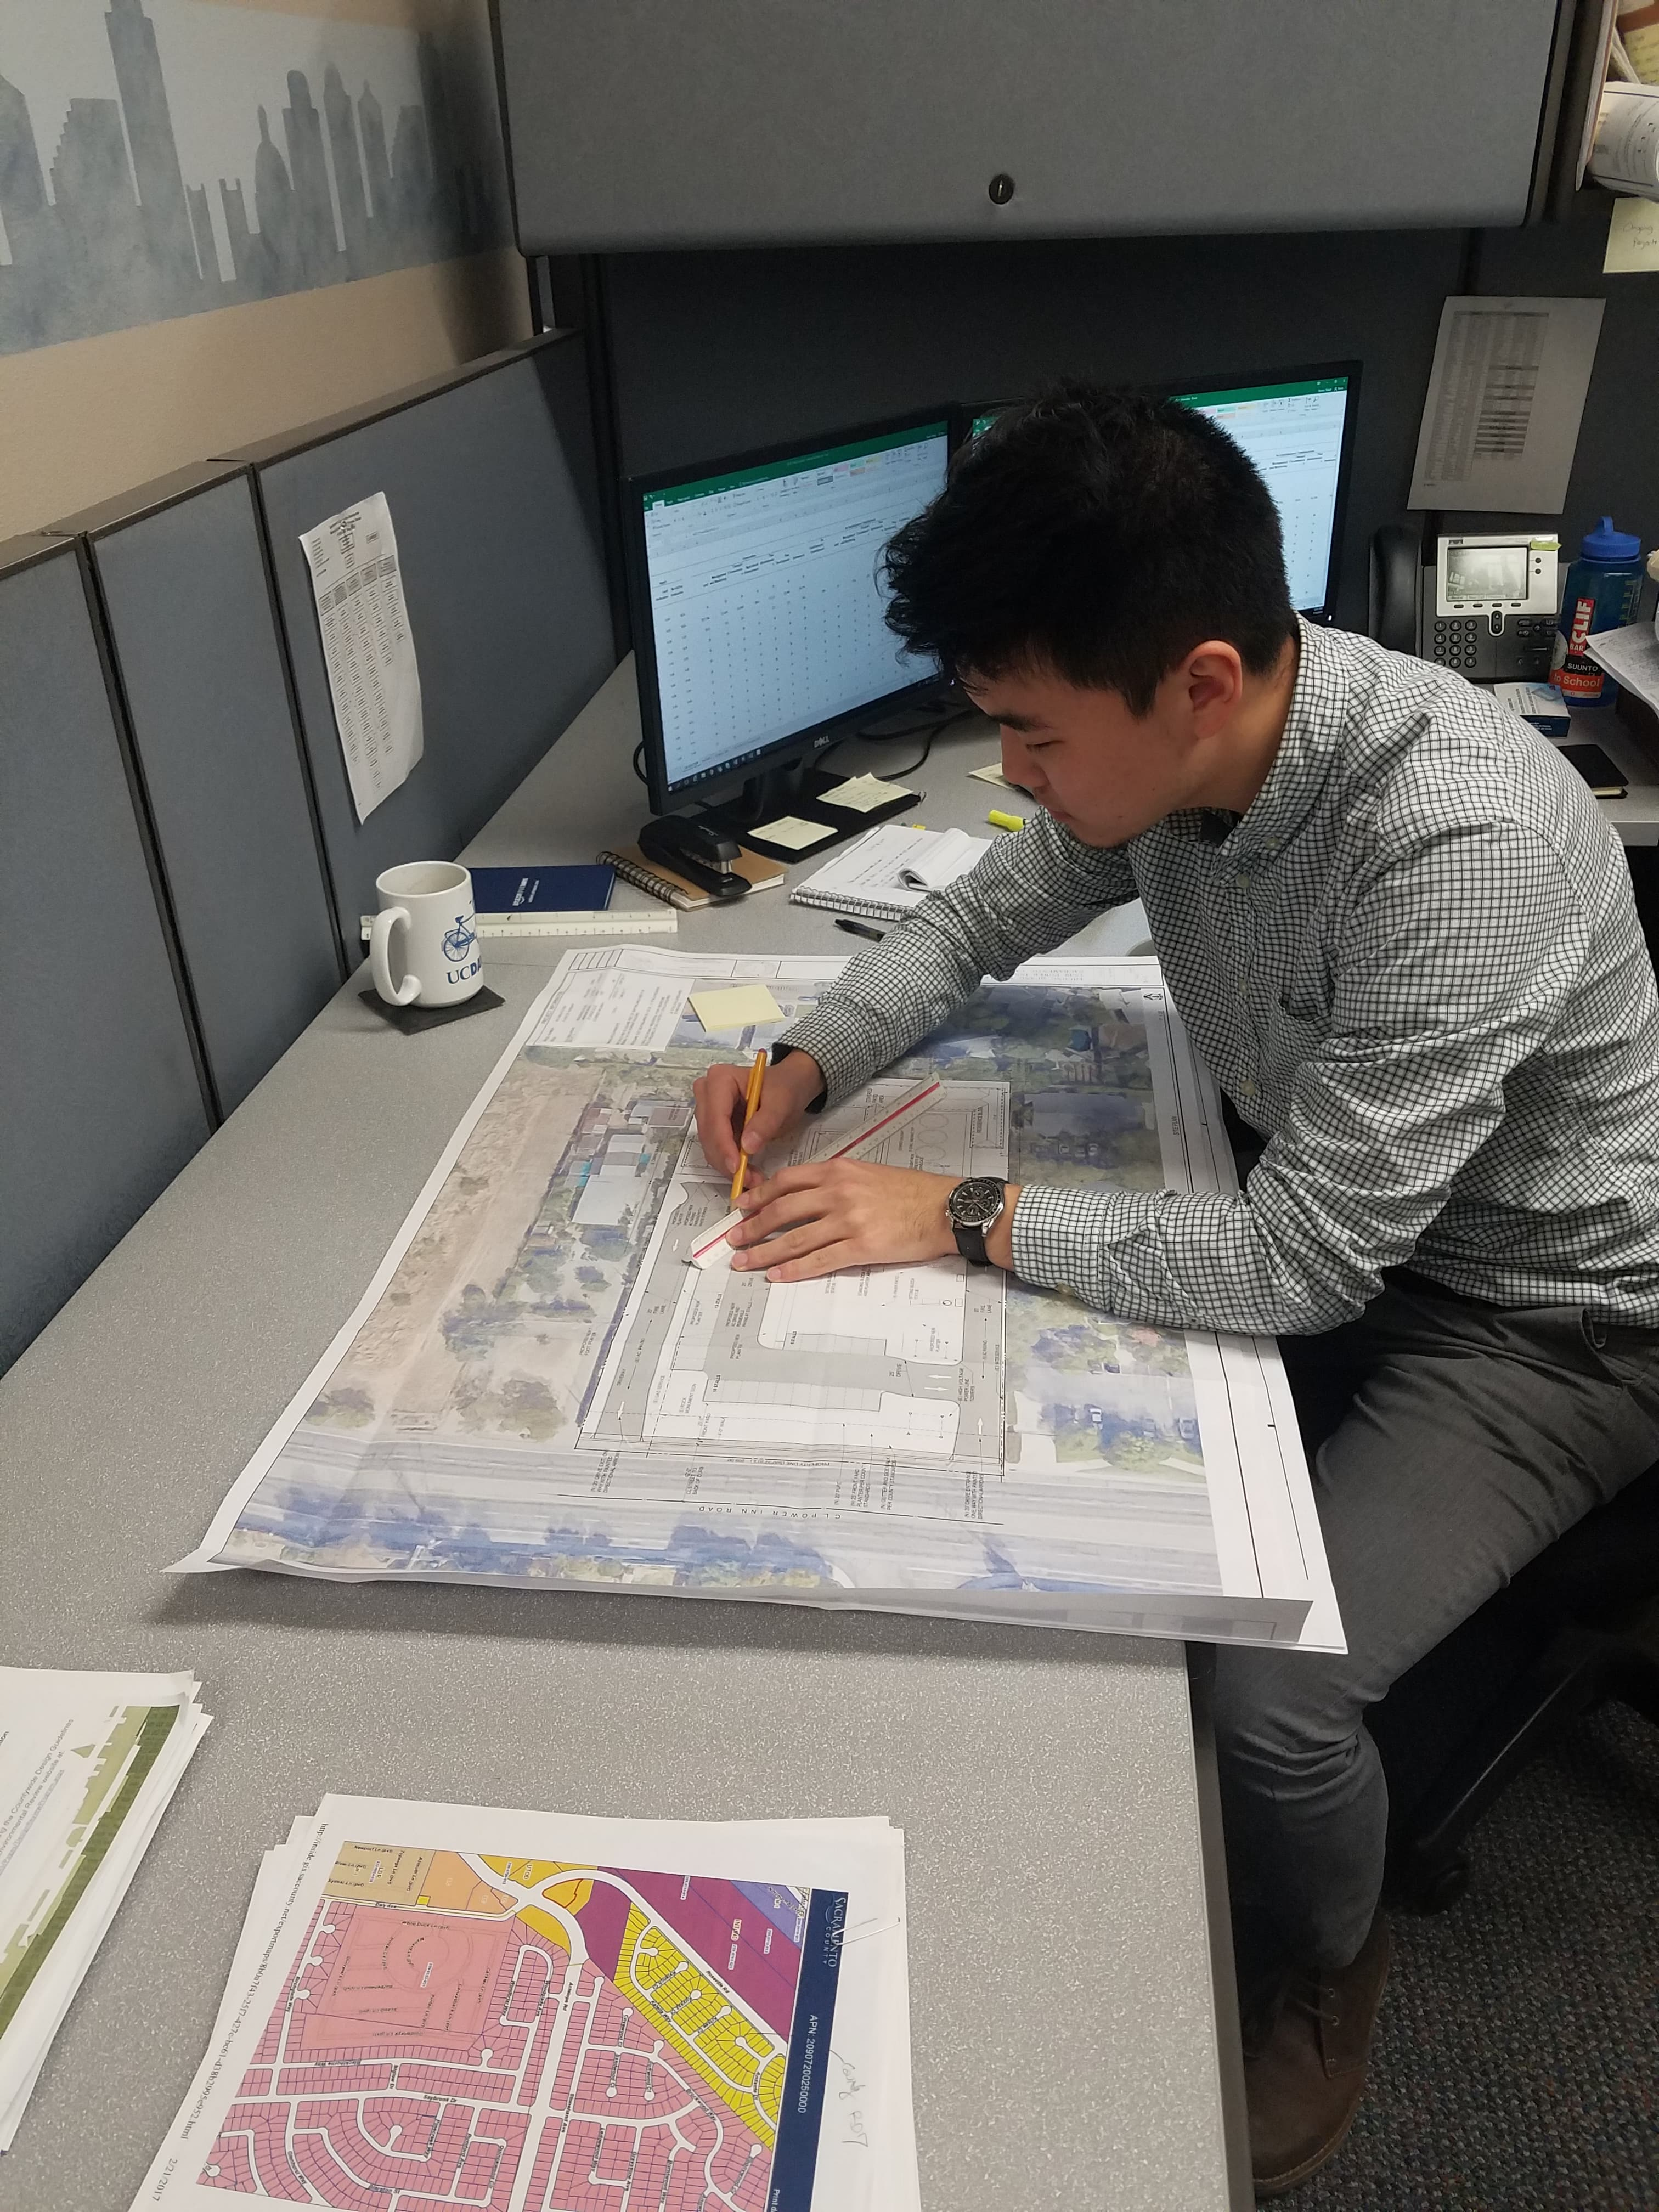 Bilegt Baatar performing internship duties at the Sacramento County Planning and Environmental Review